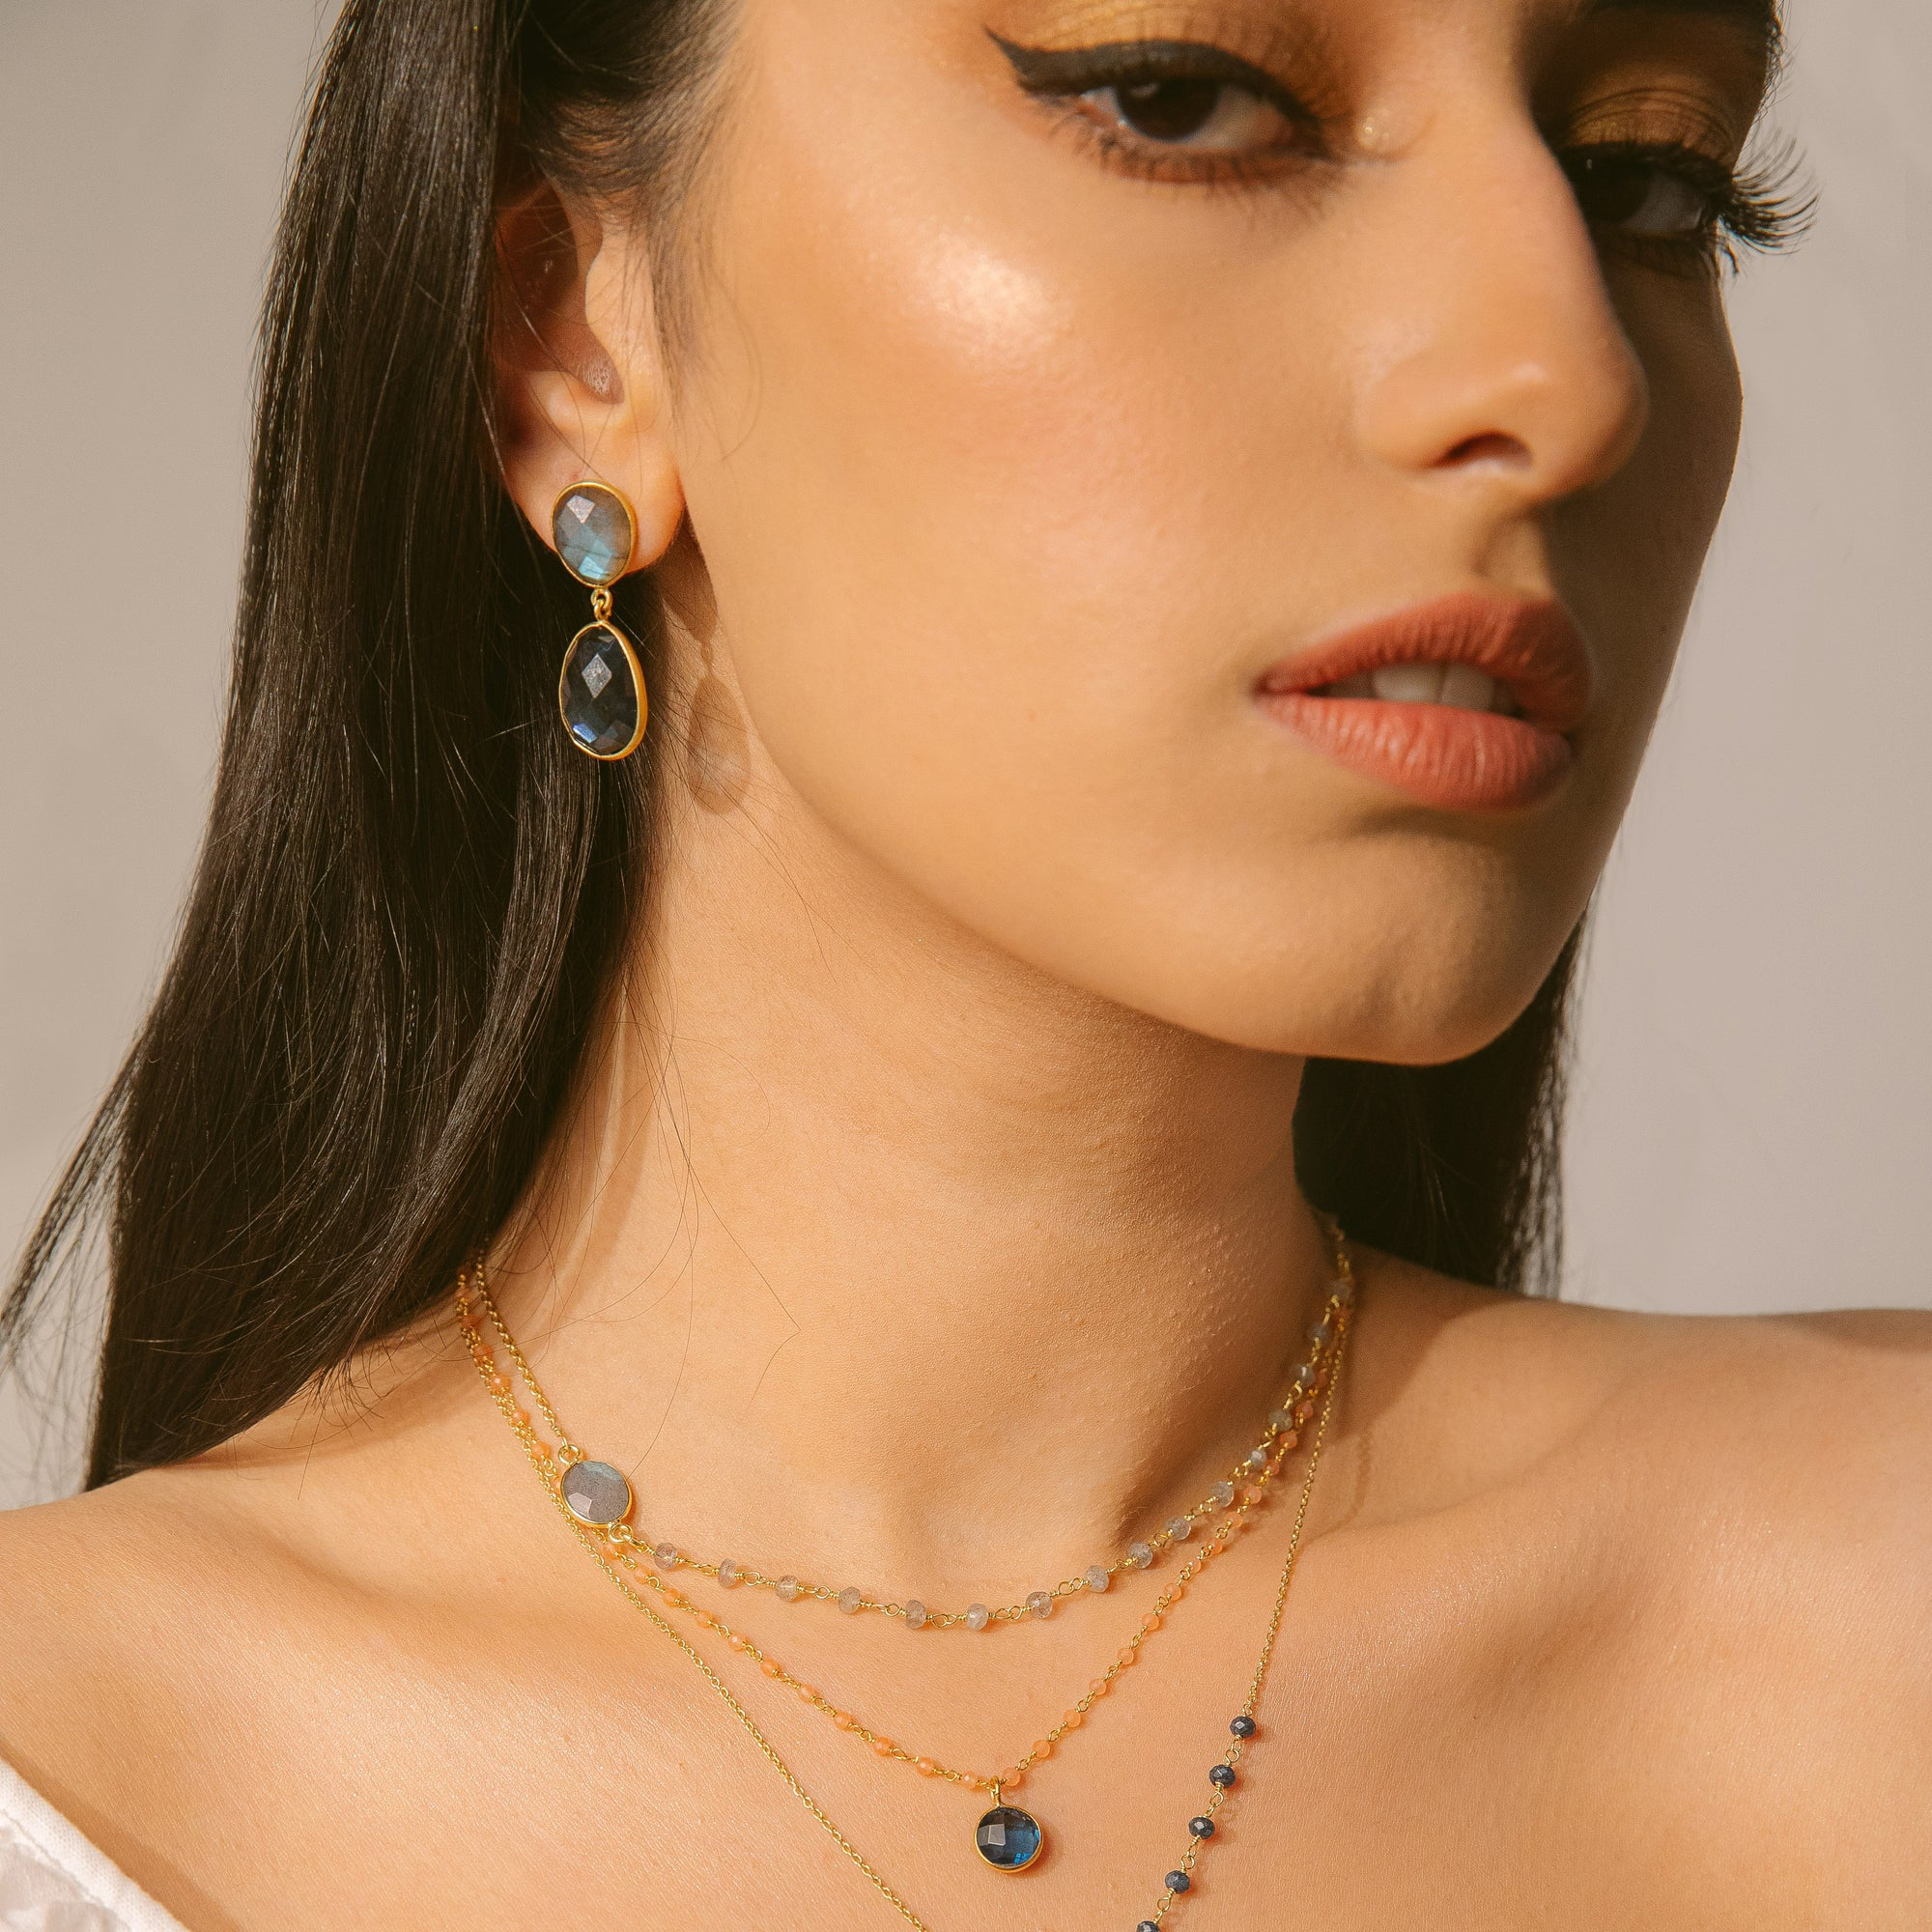 Layla Earrings	Labradorite London Topaz Quatrz handmade gold plated Katy Valentine - Shop with Sparkle & The Sinner